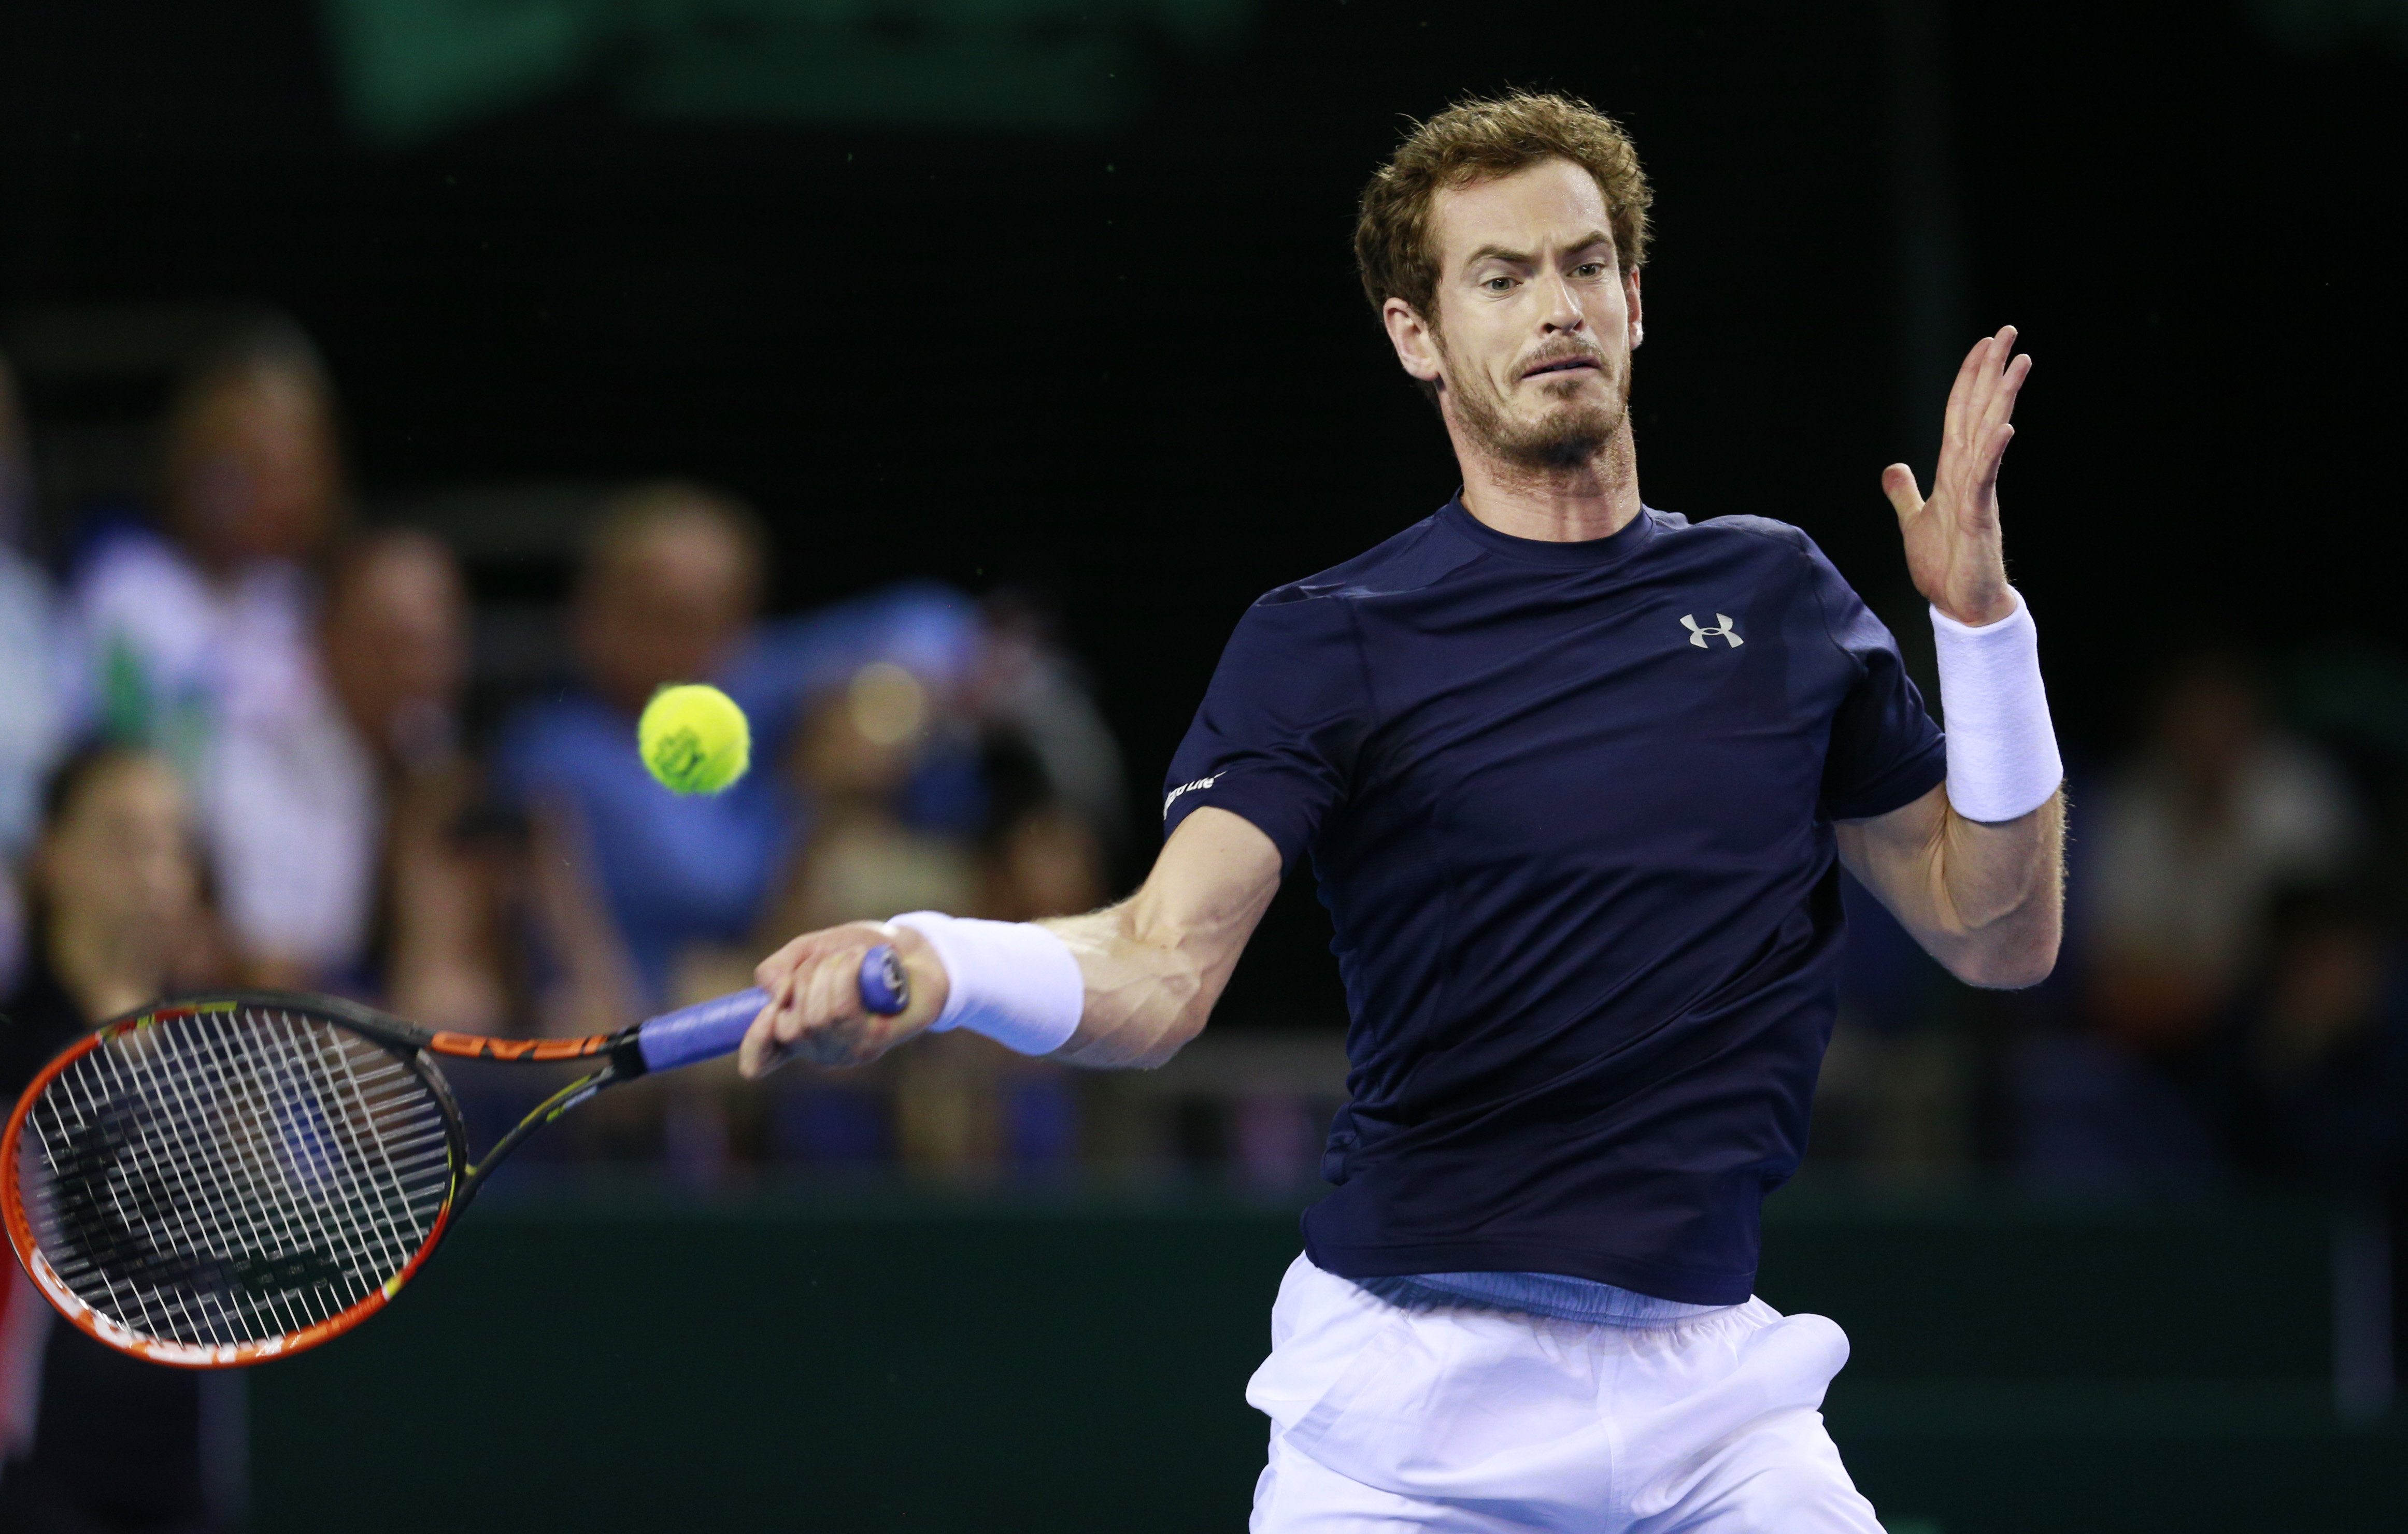 Tennis - Great Britain v Australia - Davis Cup Semi Final - Emirates Arena, Glasgow, Scotland - 20/9/15nMen's Singles - Great Britain's Andy Murray in actionnAction Images via Reuters / Jason CairnduffnLivepic